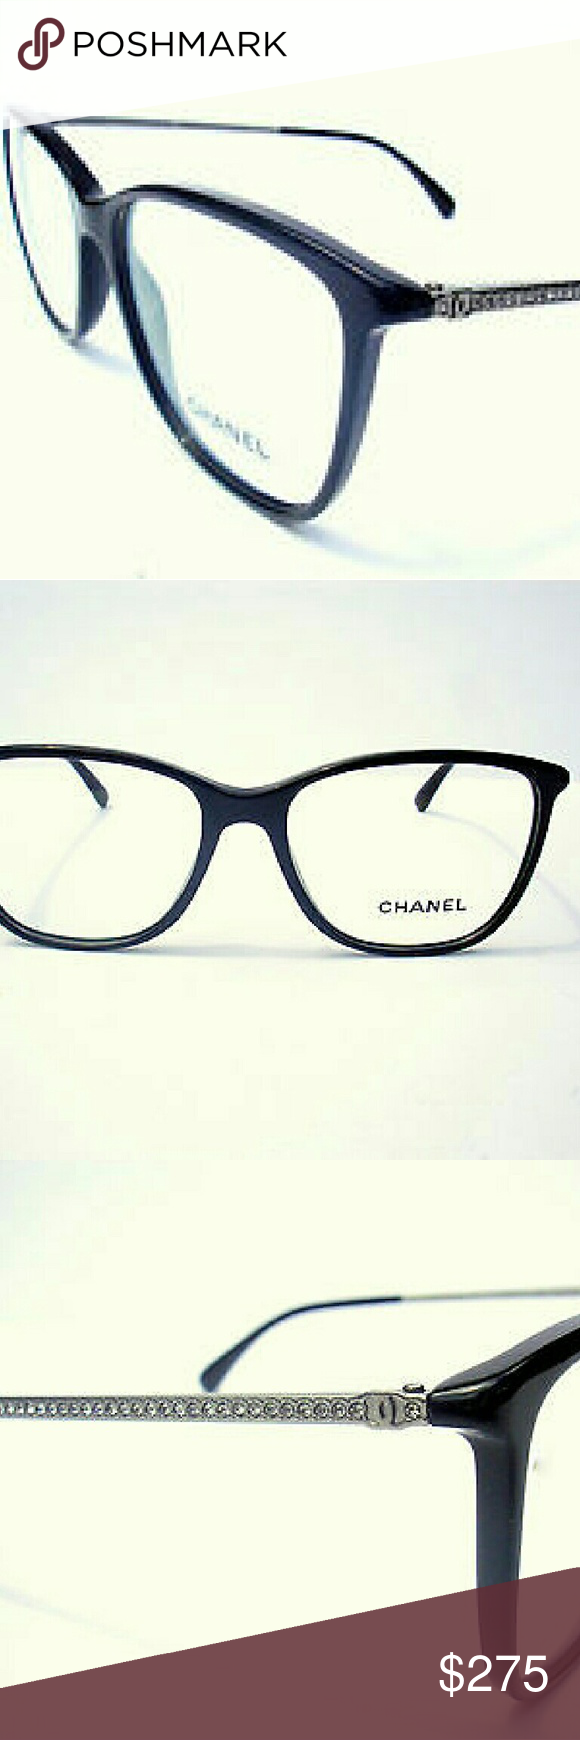 f9740ae2981 Chanel Eyeglasses New authentic Chanel Eyeglasses Black frame with crystals  on sides Includes original case only Chanel Accessories Glasses